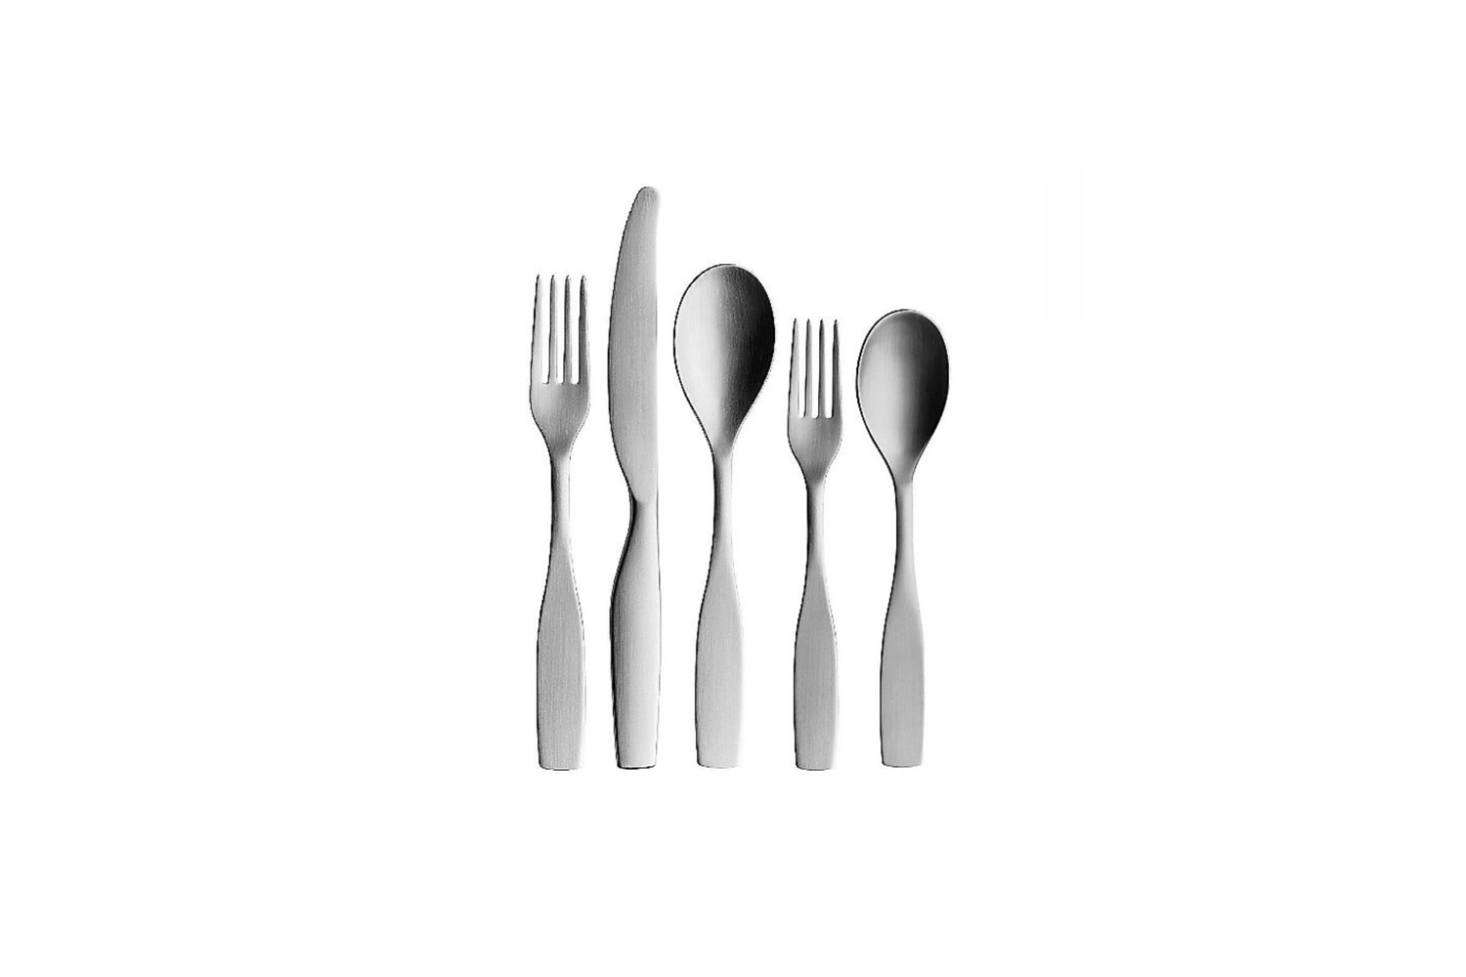 The Citterio 98 5-Piece Place Setting is part of the 1998 collection by Italian designer Antonio Citterio for Iittala. Each piece is intended to rest neatly in the palm of the hand while in use; $85 for the set at YLiving.